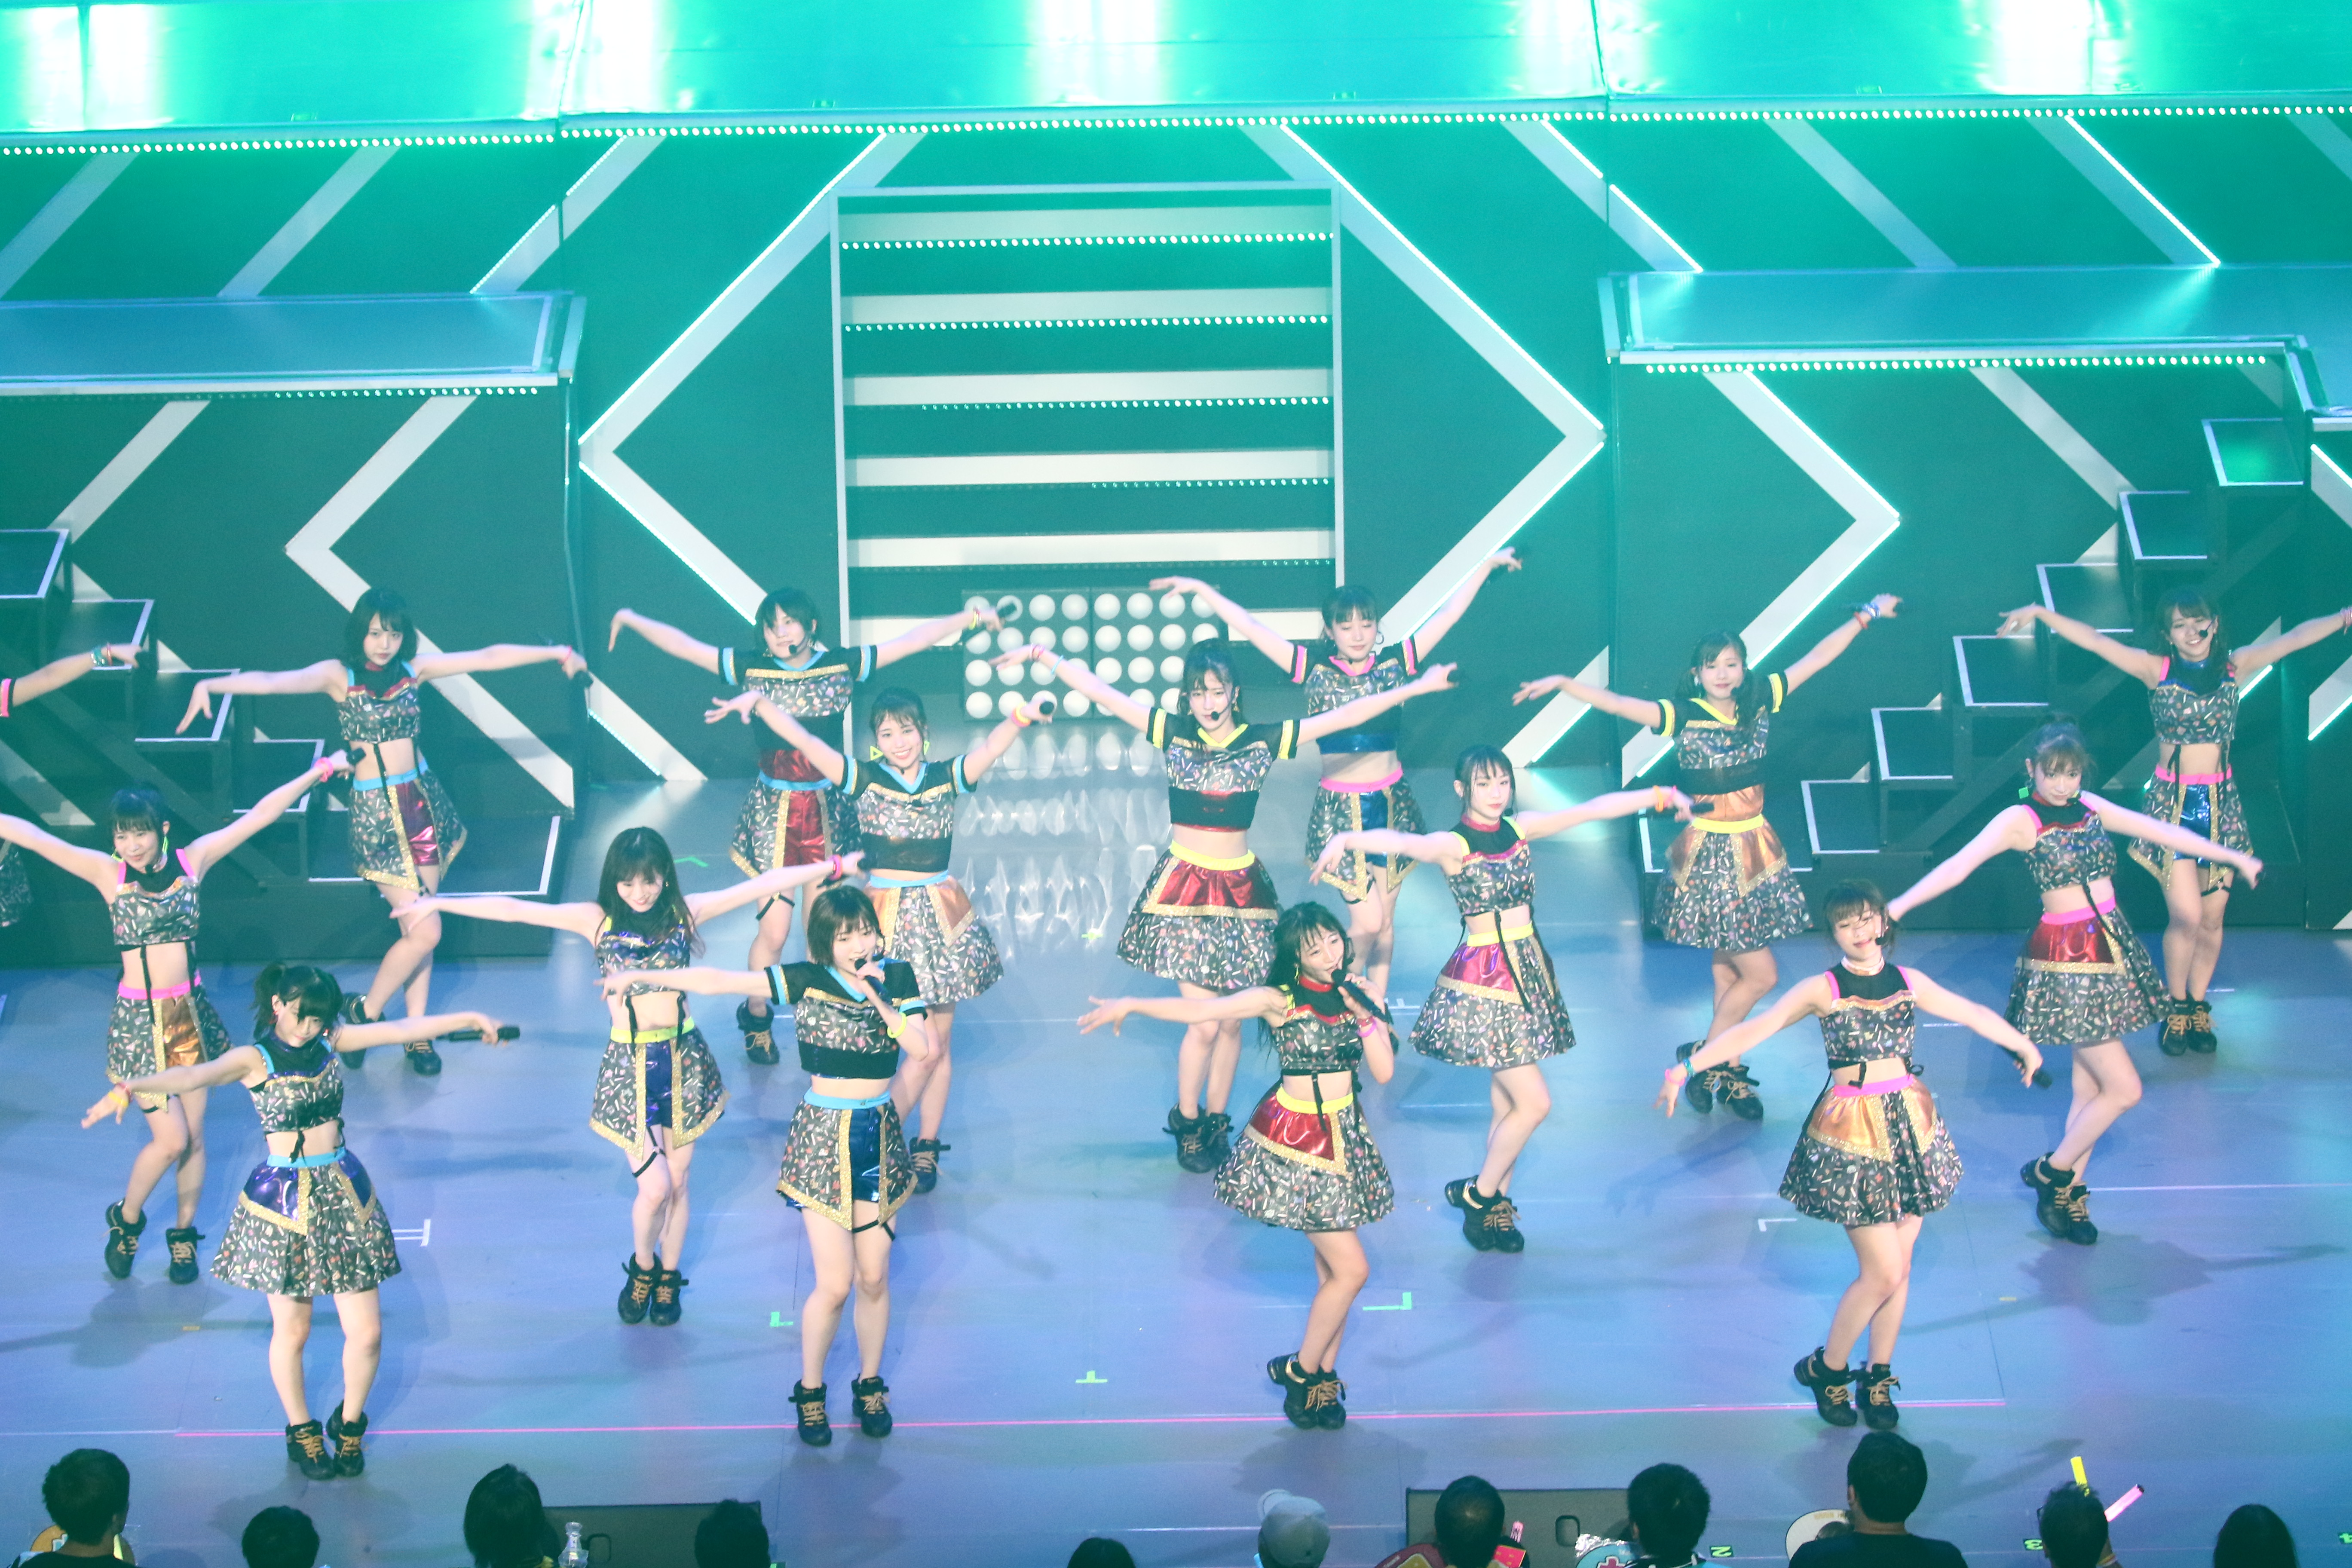 NMB48 LIVE TOUR 2018 in SUMMER 神奈川公演-014